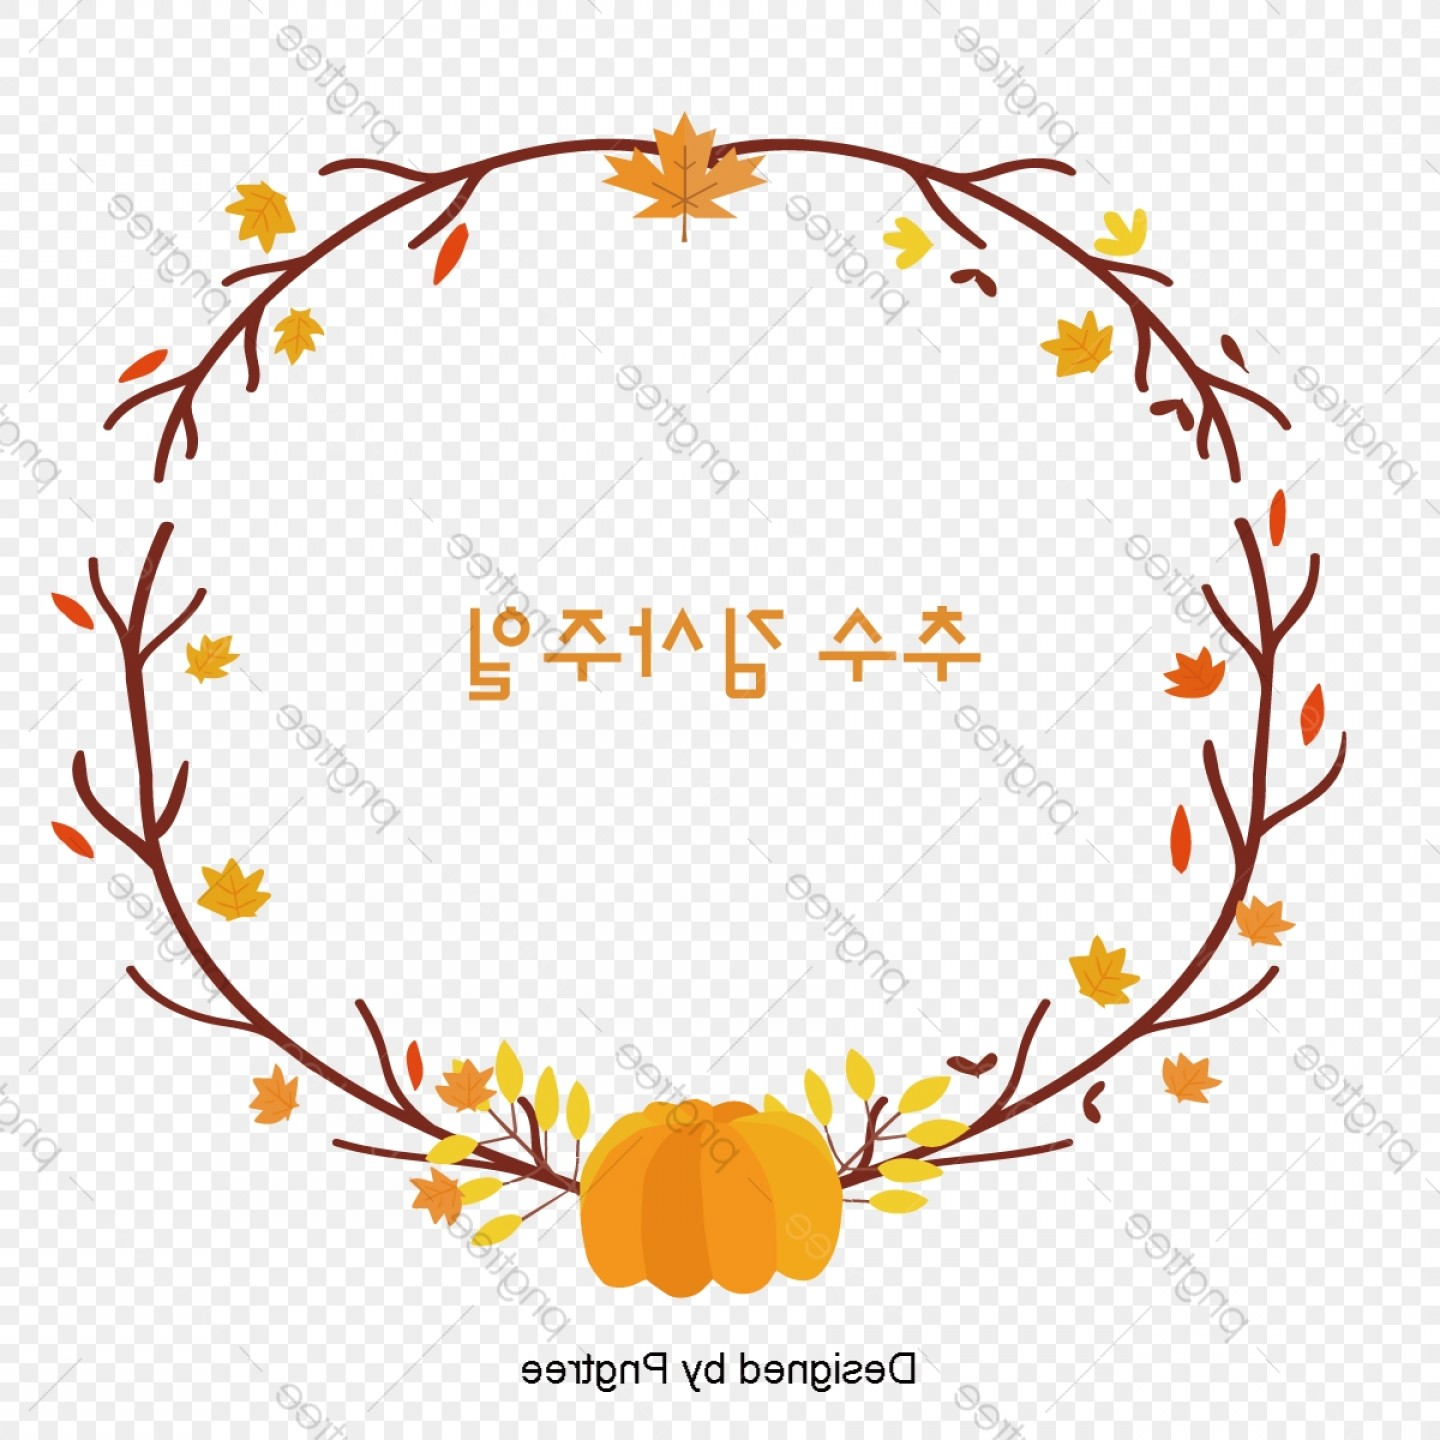 Thanksgiving Border Vector: Thanksgiving Lace Pumpkin Maple Leaf Border